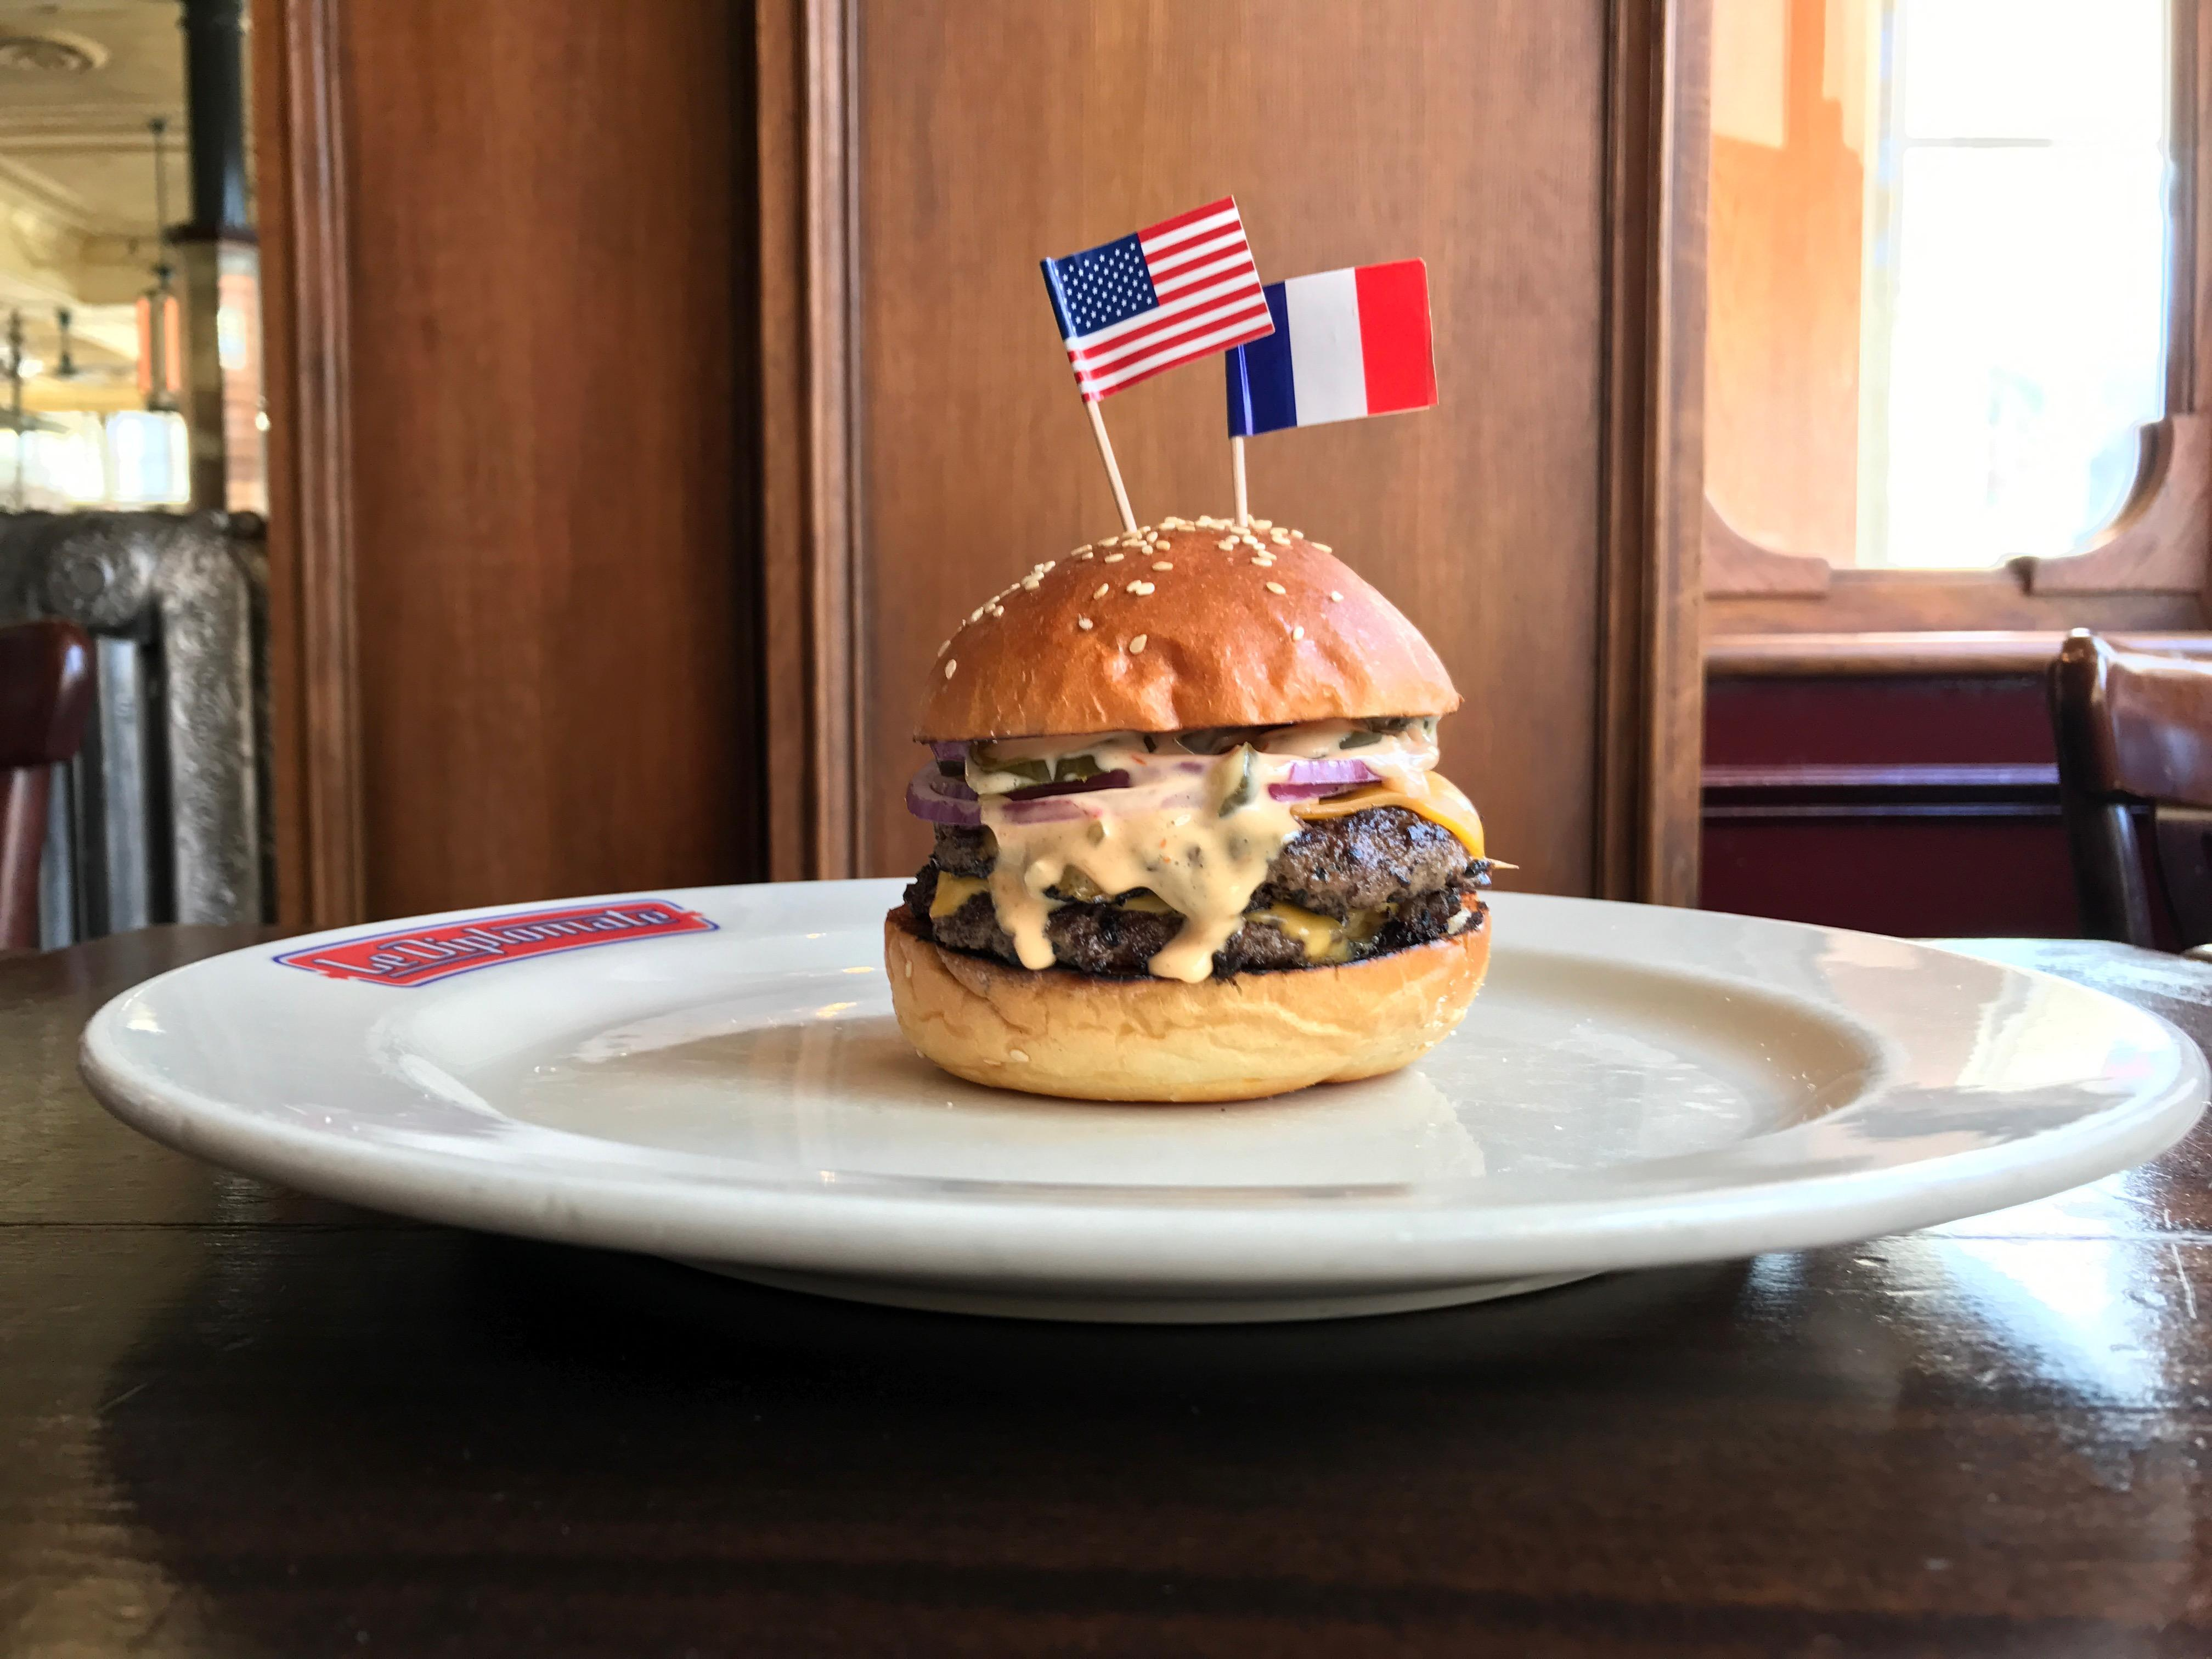 Guests feasting on the city's best French fare at Le Diplomate will also fall for their equally magnifique Burger Americain ($17). The widely-lauded hamburger features two special-blend patties topped with classic American cheese, crunchy pickles, onion, and special sauce, all on a housemade brioche bun. The menu favorite comes with a beaucoup serving of their signature pommes frites. (Photo courtesy: Le Diplomate)